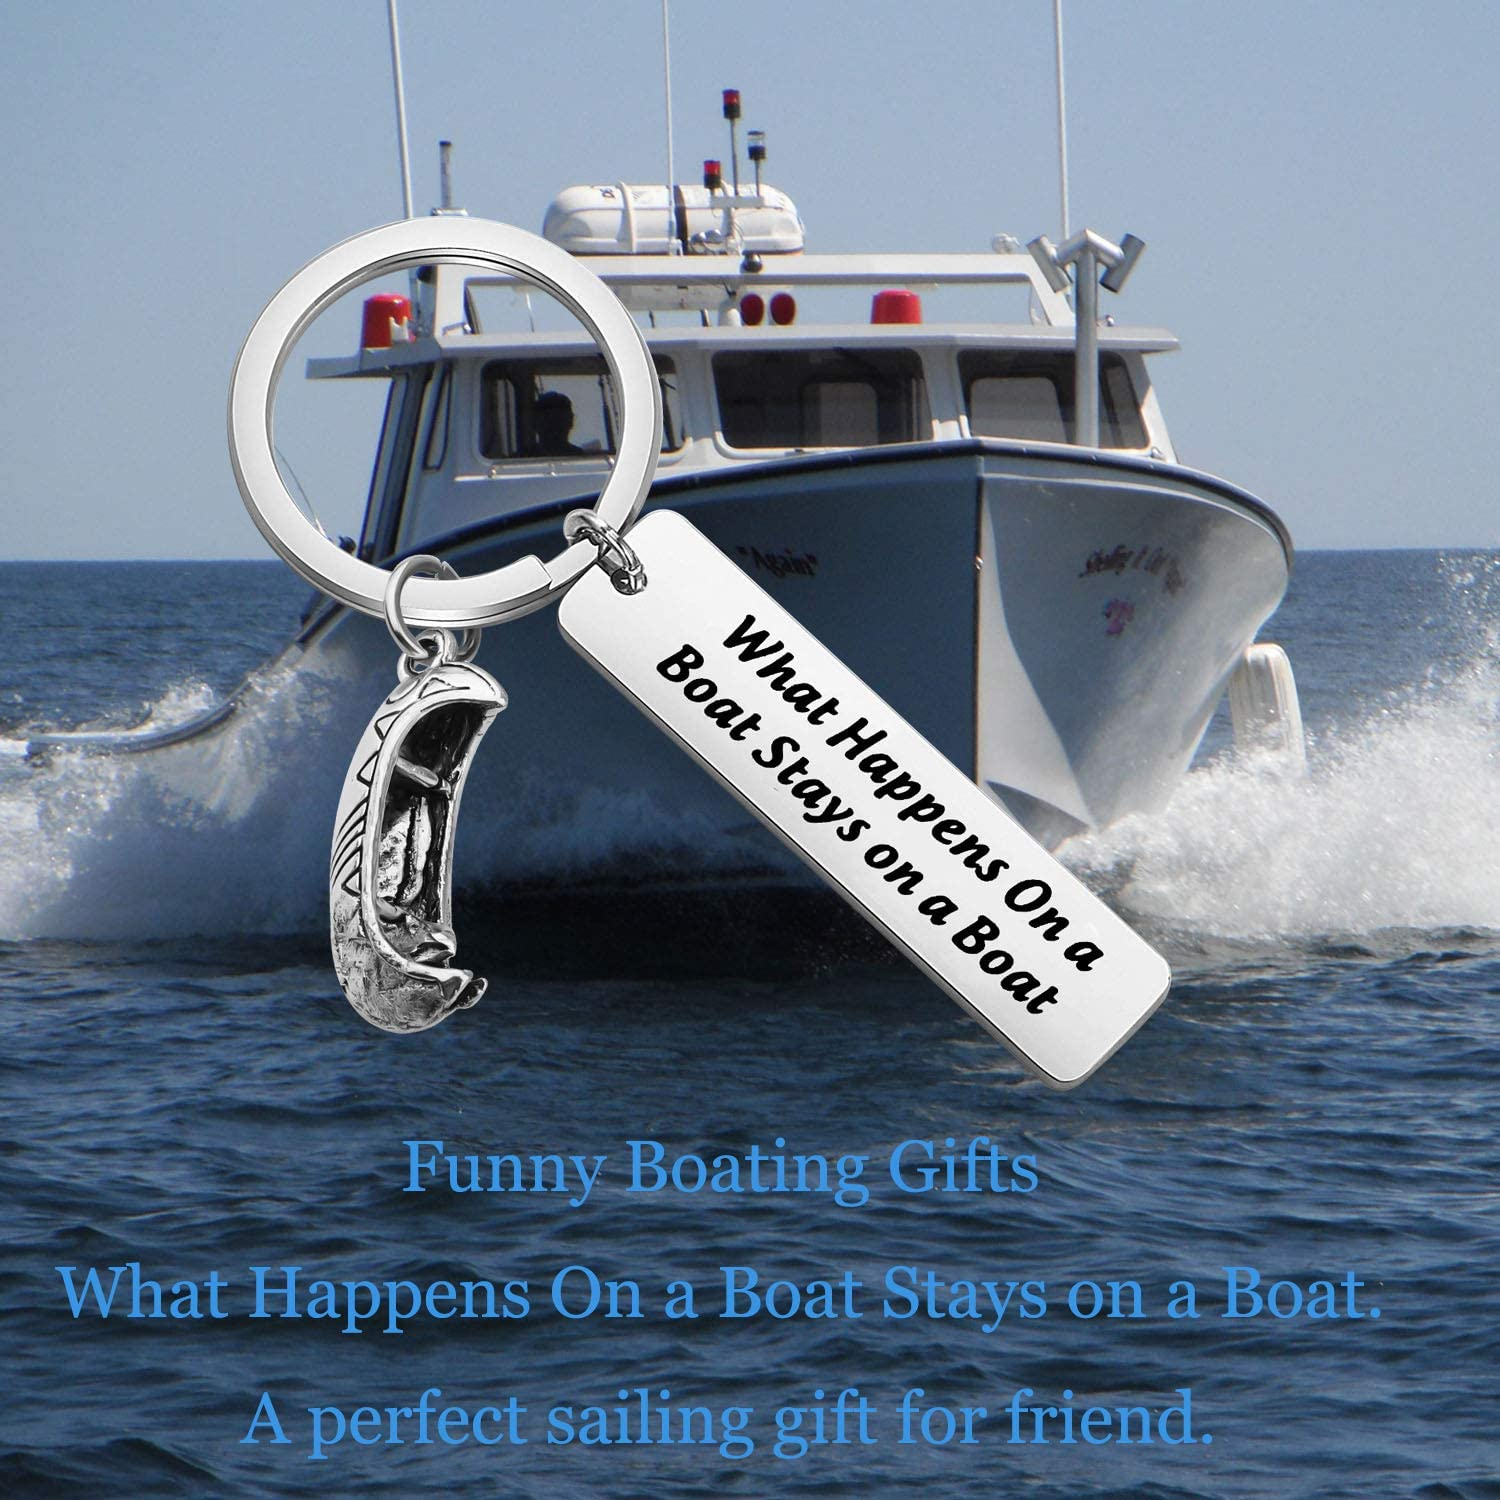 Lywjyb Birdgot Nautical Gifts Sailing Boating Gifts for Captain Funny Fishing Gifts Nautical Sailor Anchor Gift What Happens On The Boat Stays On The Boat Keychain